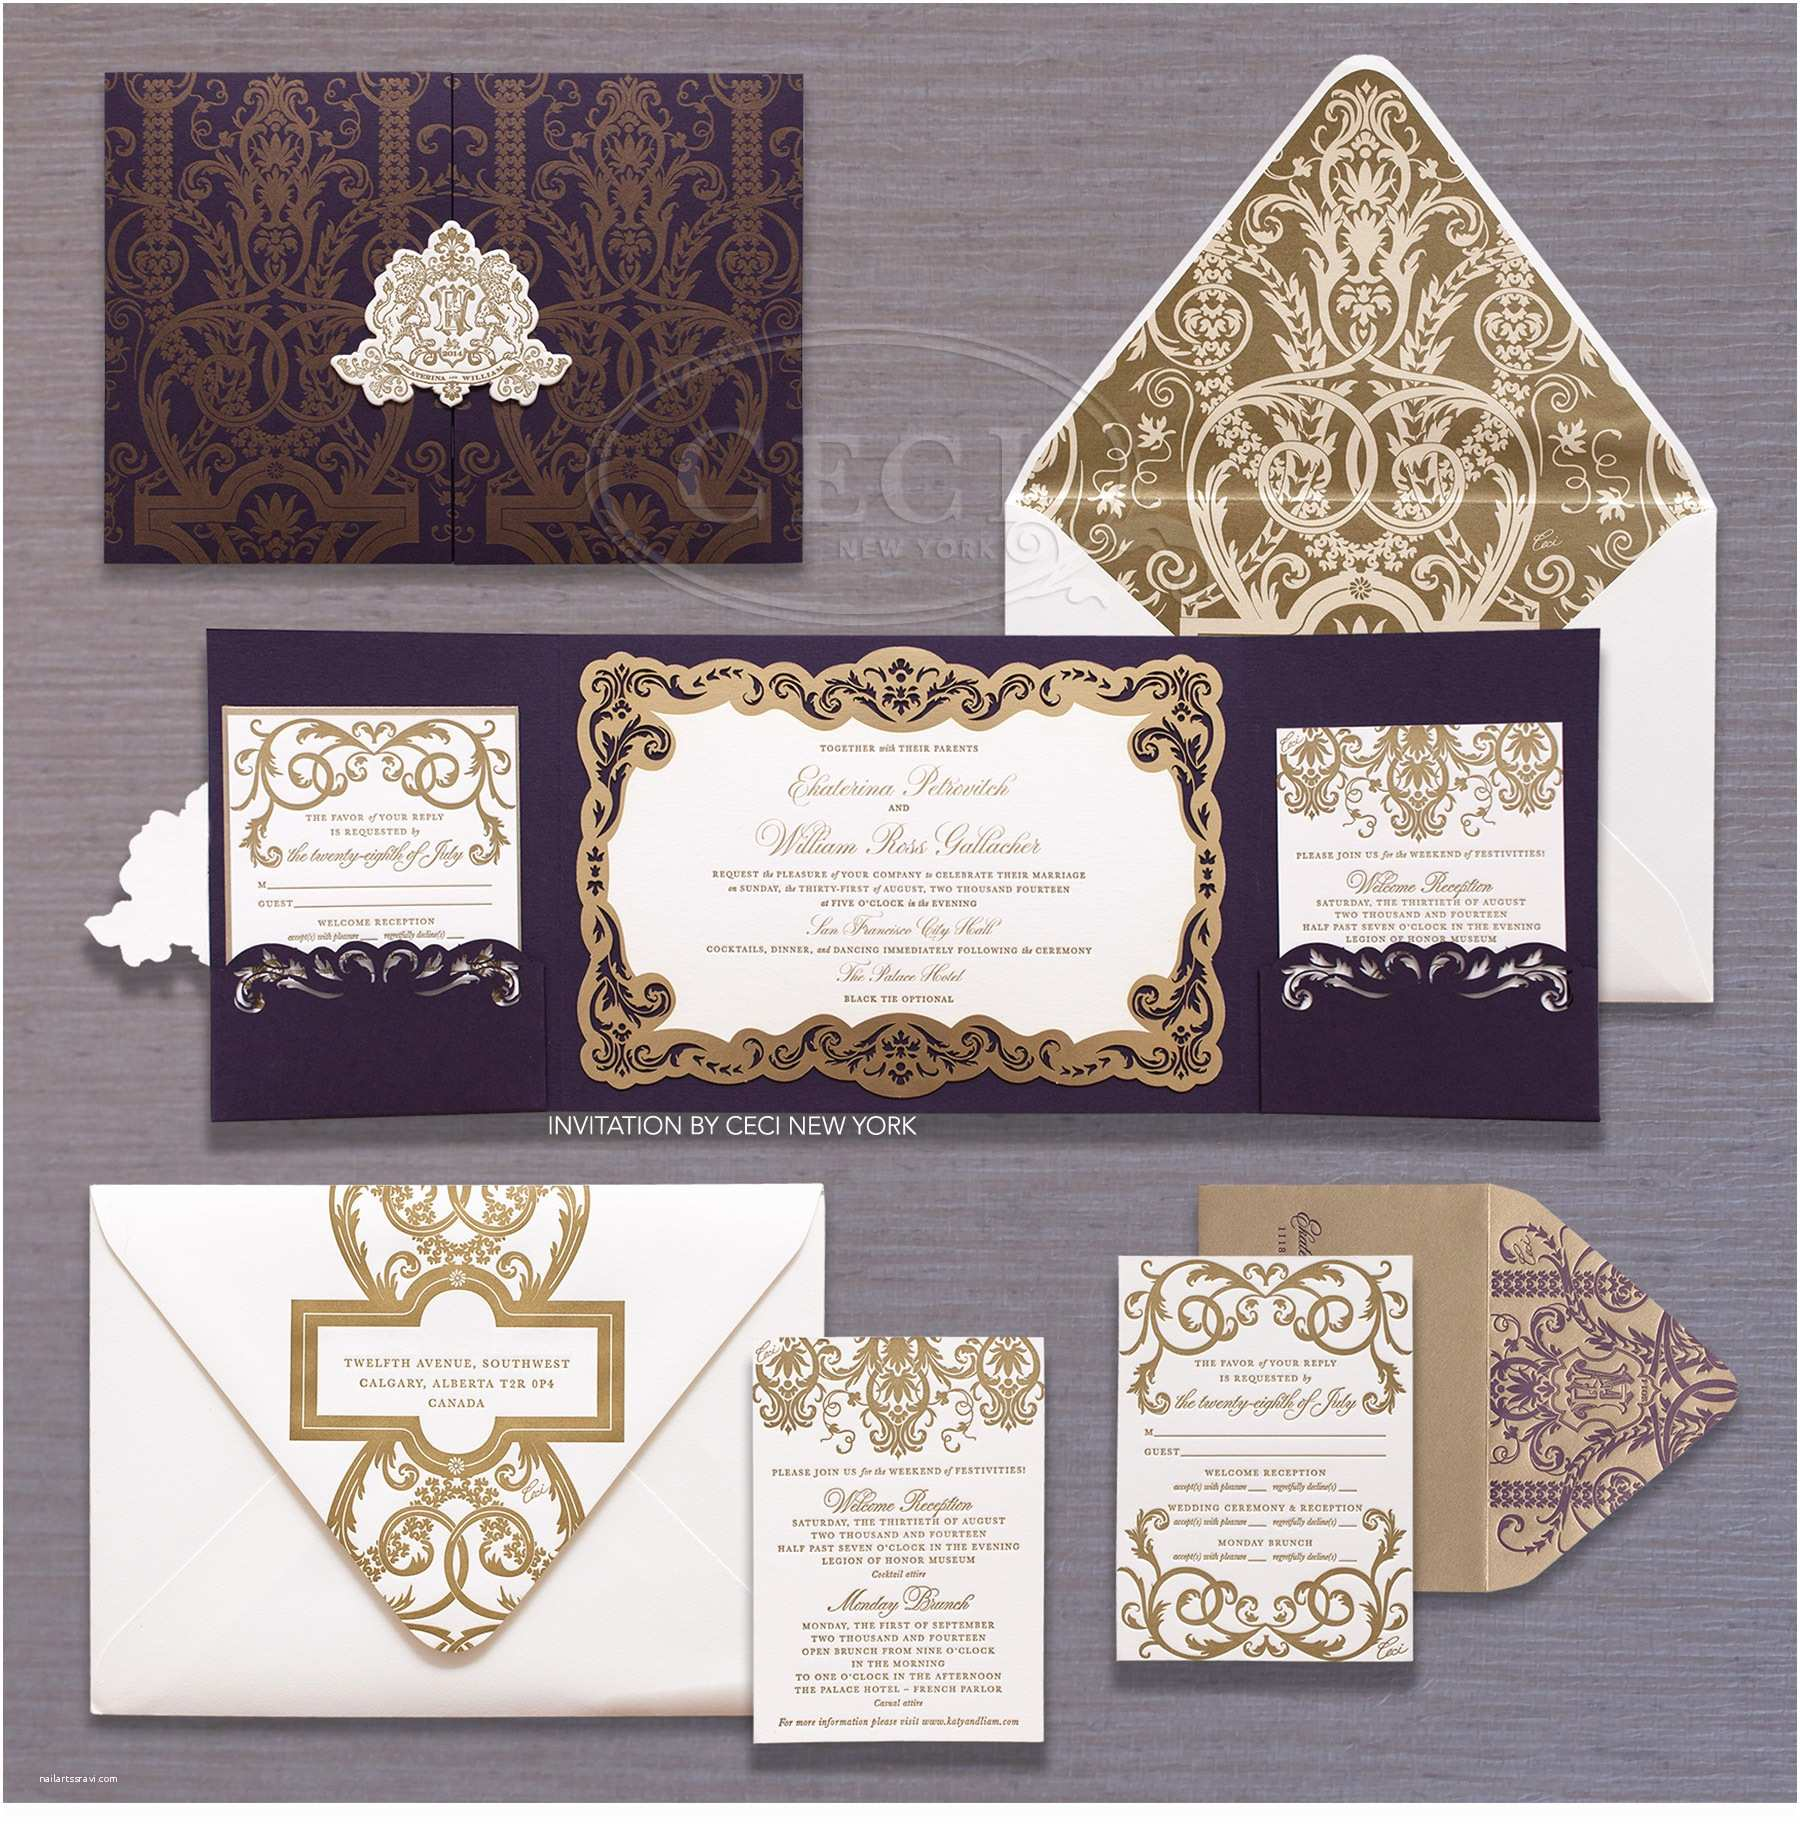 New Wedding Invitations Luxury Wedding Invitations by Ceci New York Our Muse